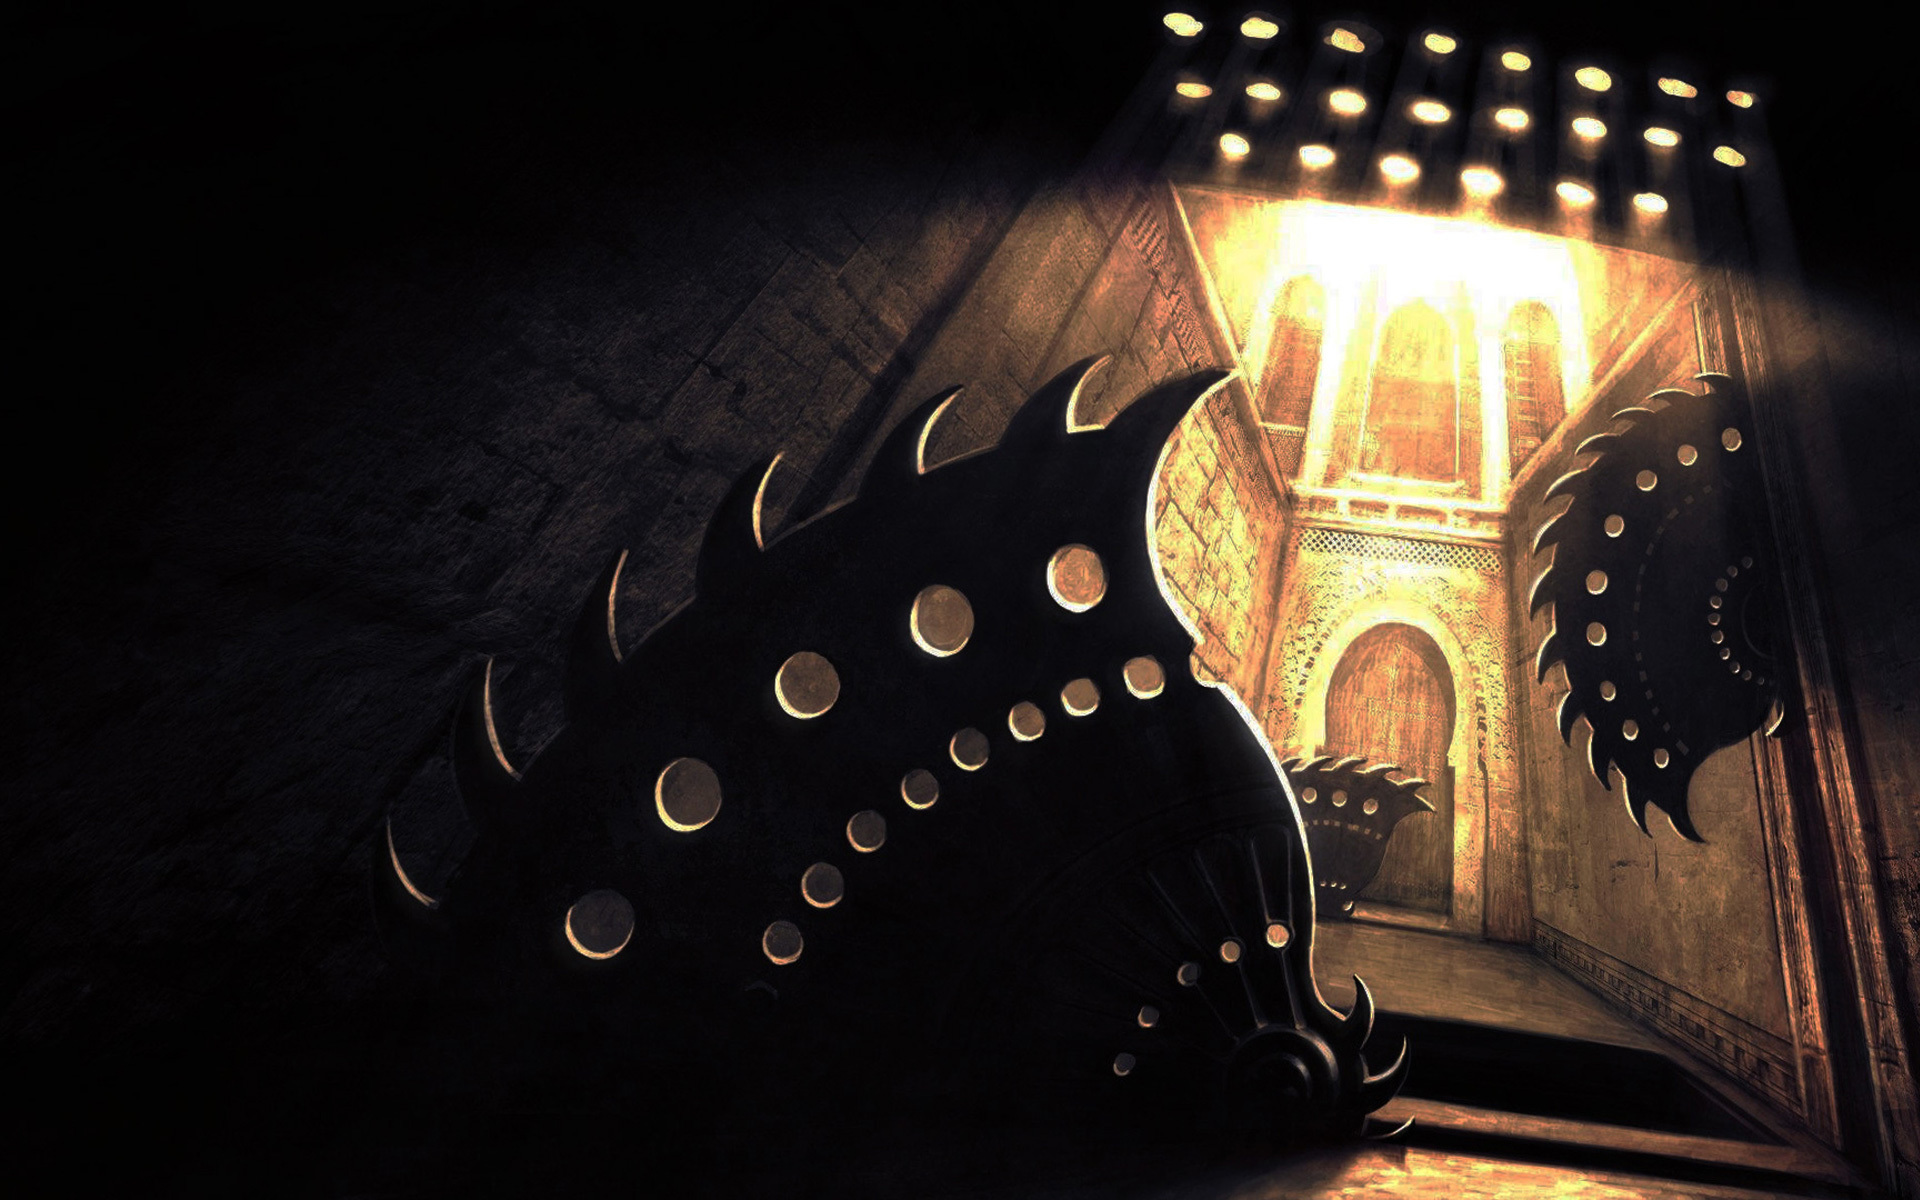 high resolution image of prince of persia  wallpaper of the sands of time  an obstacle